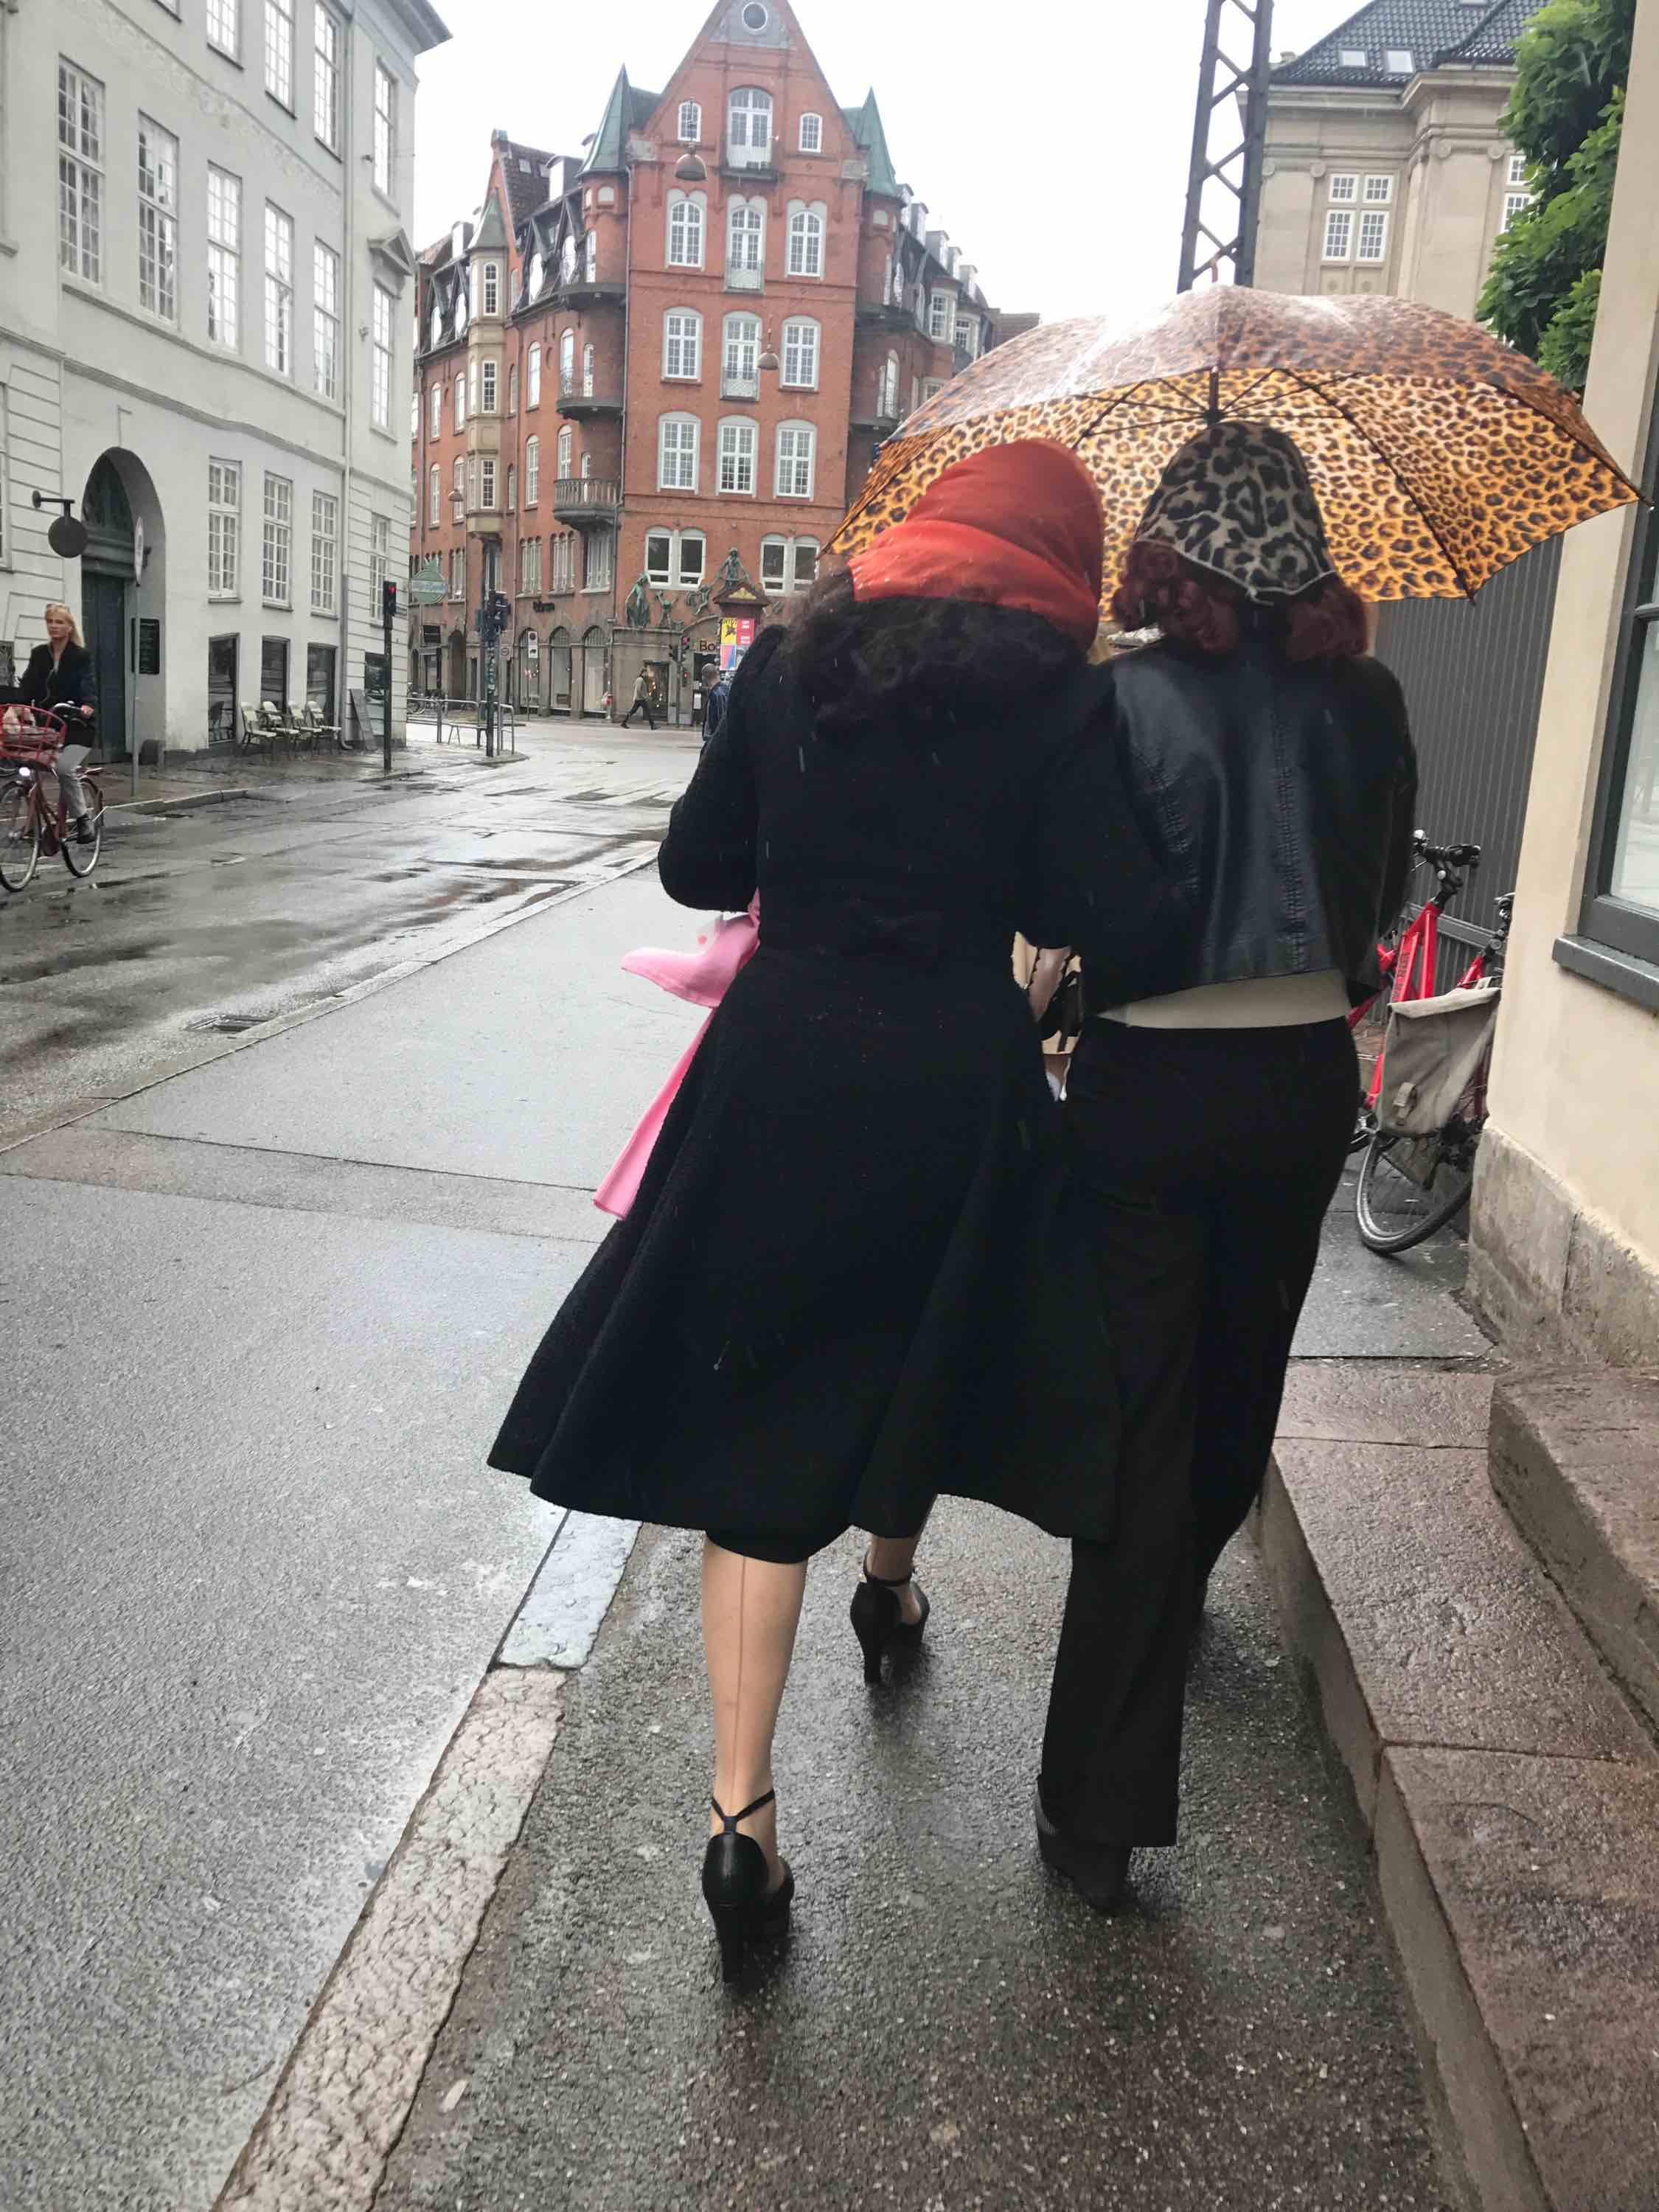 Vintage inspired dresses and other clothing in Copenhagen